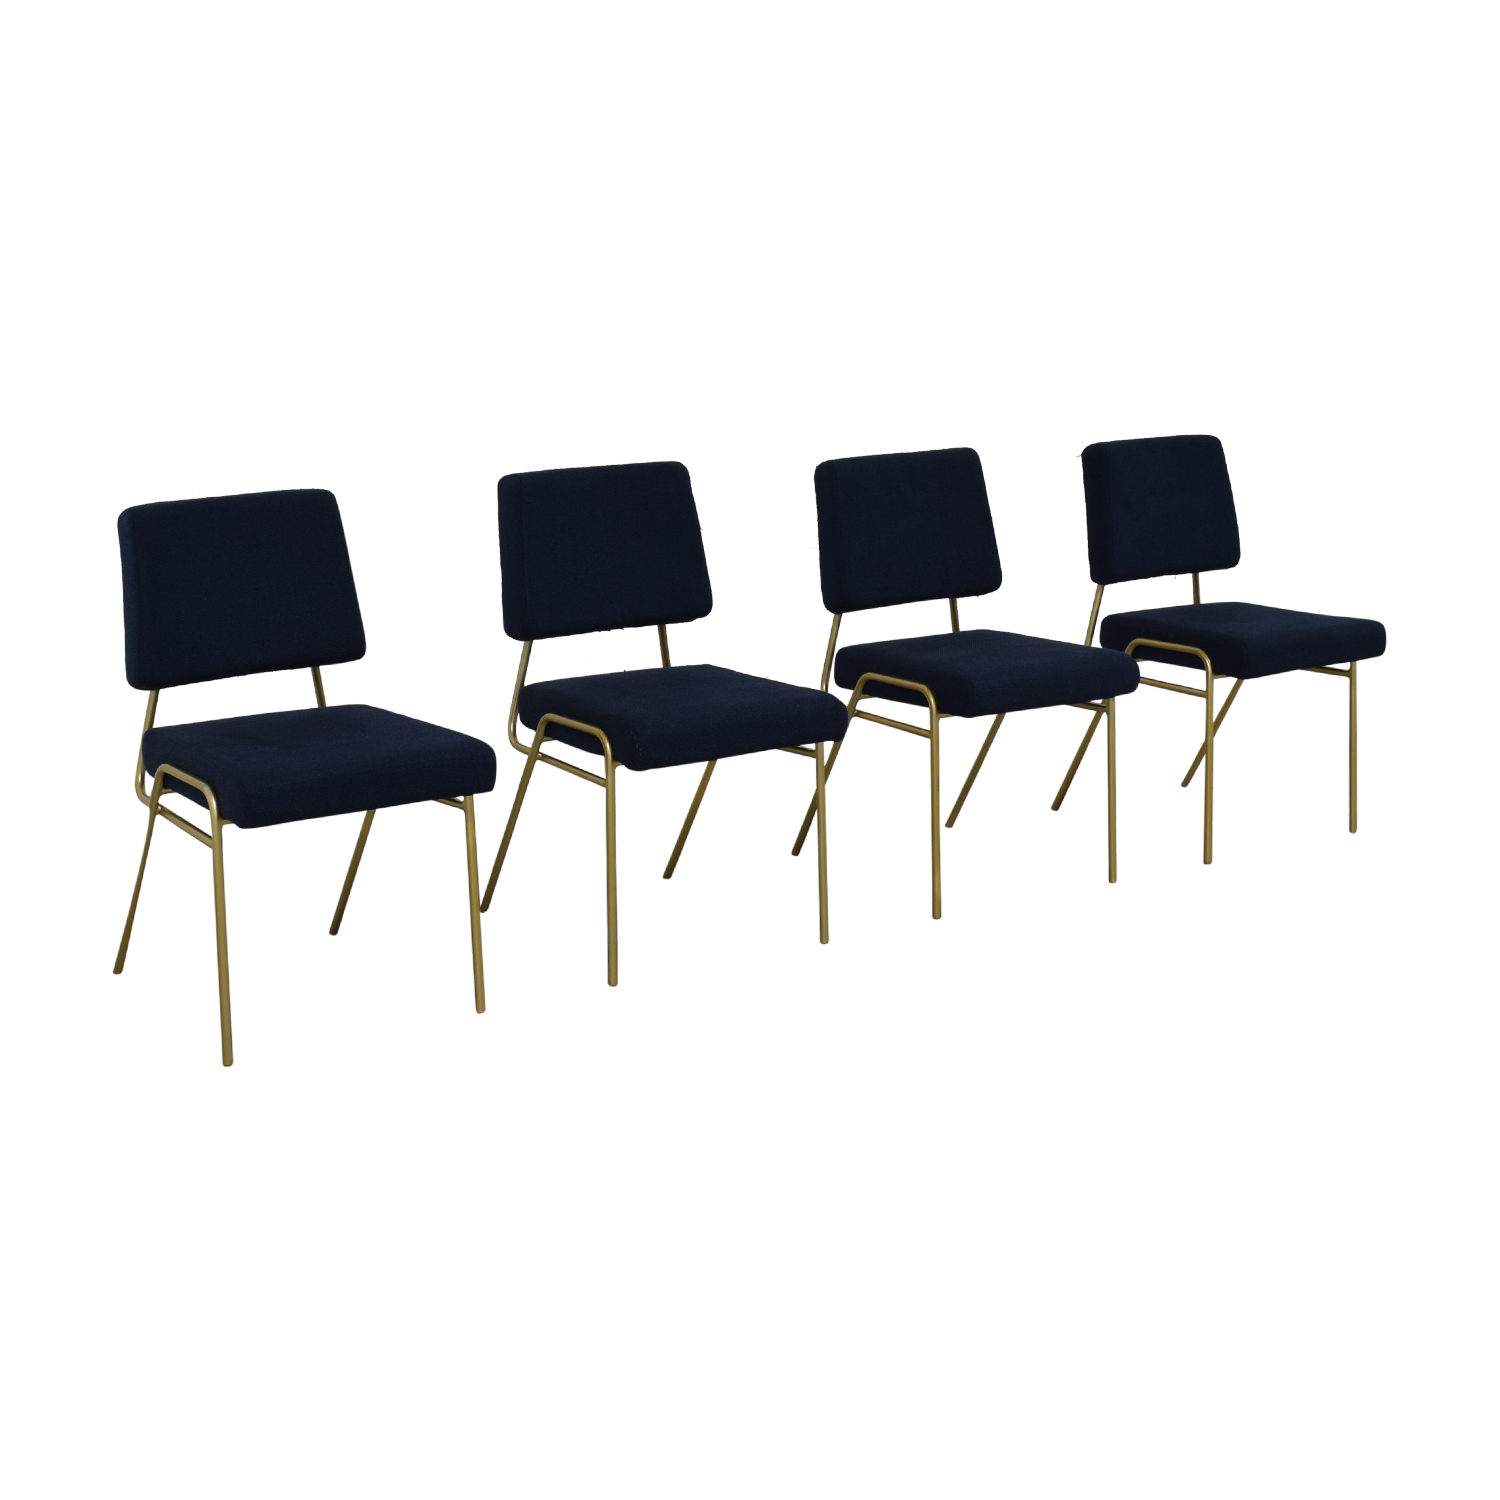 West Elm West Elm Navy Blue Upholstered Dining Chairs second hand